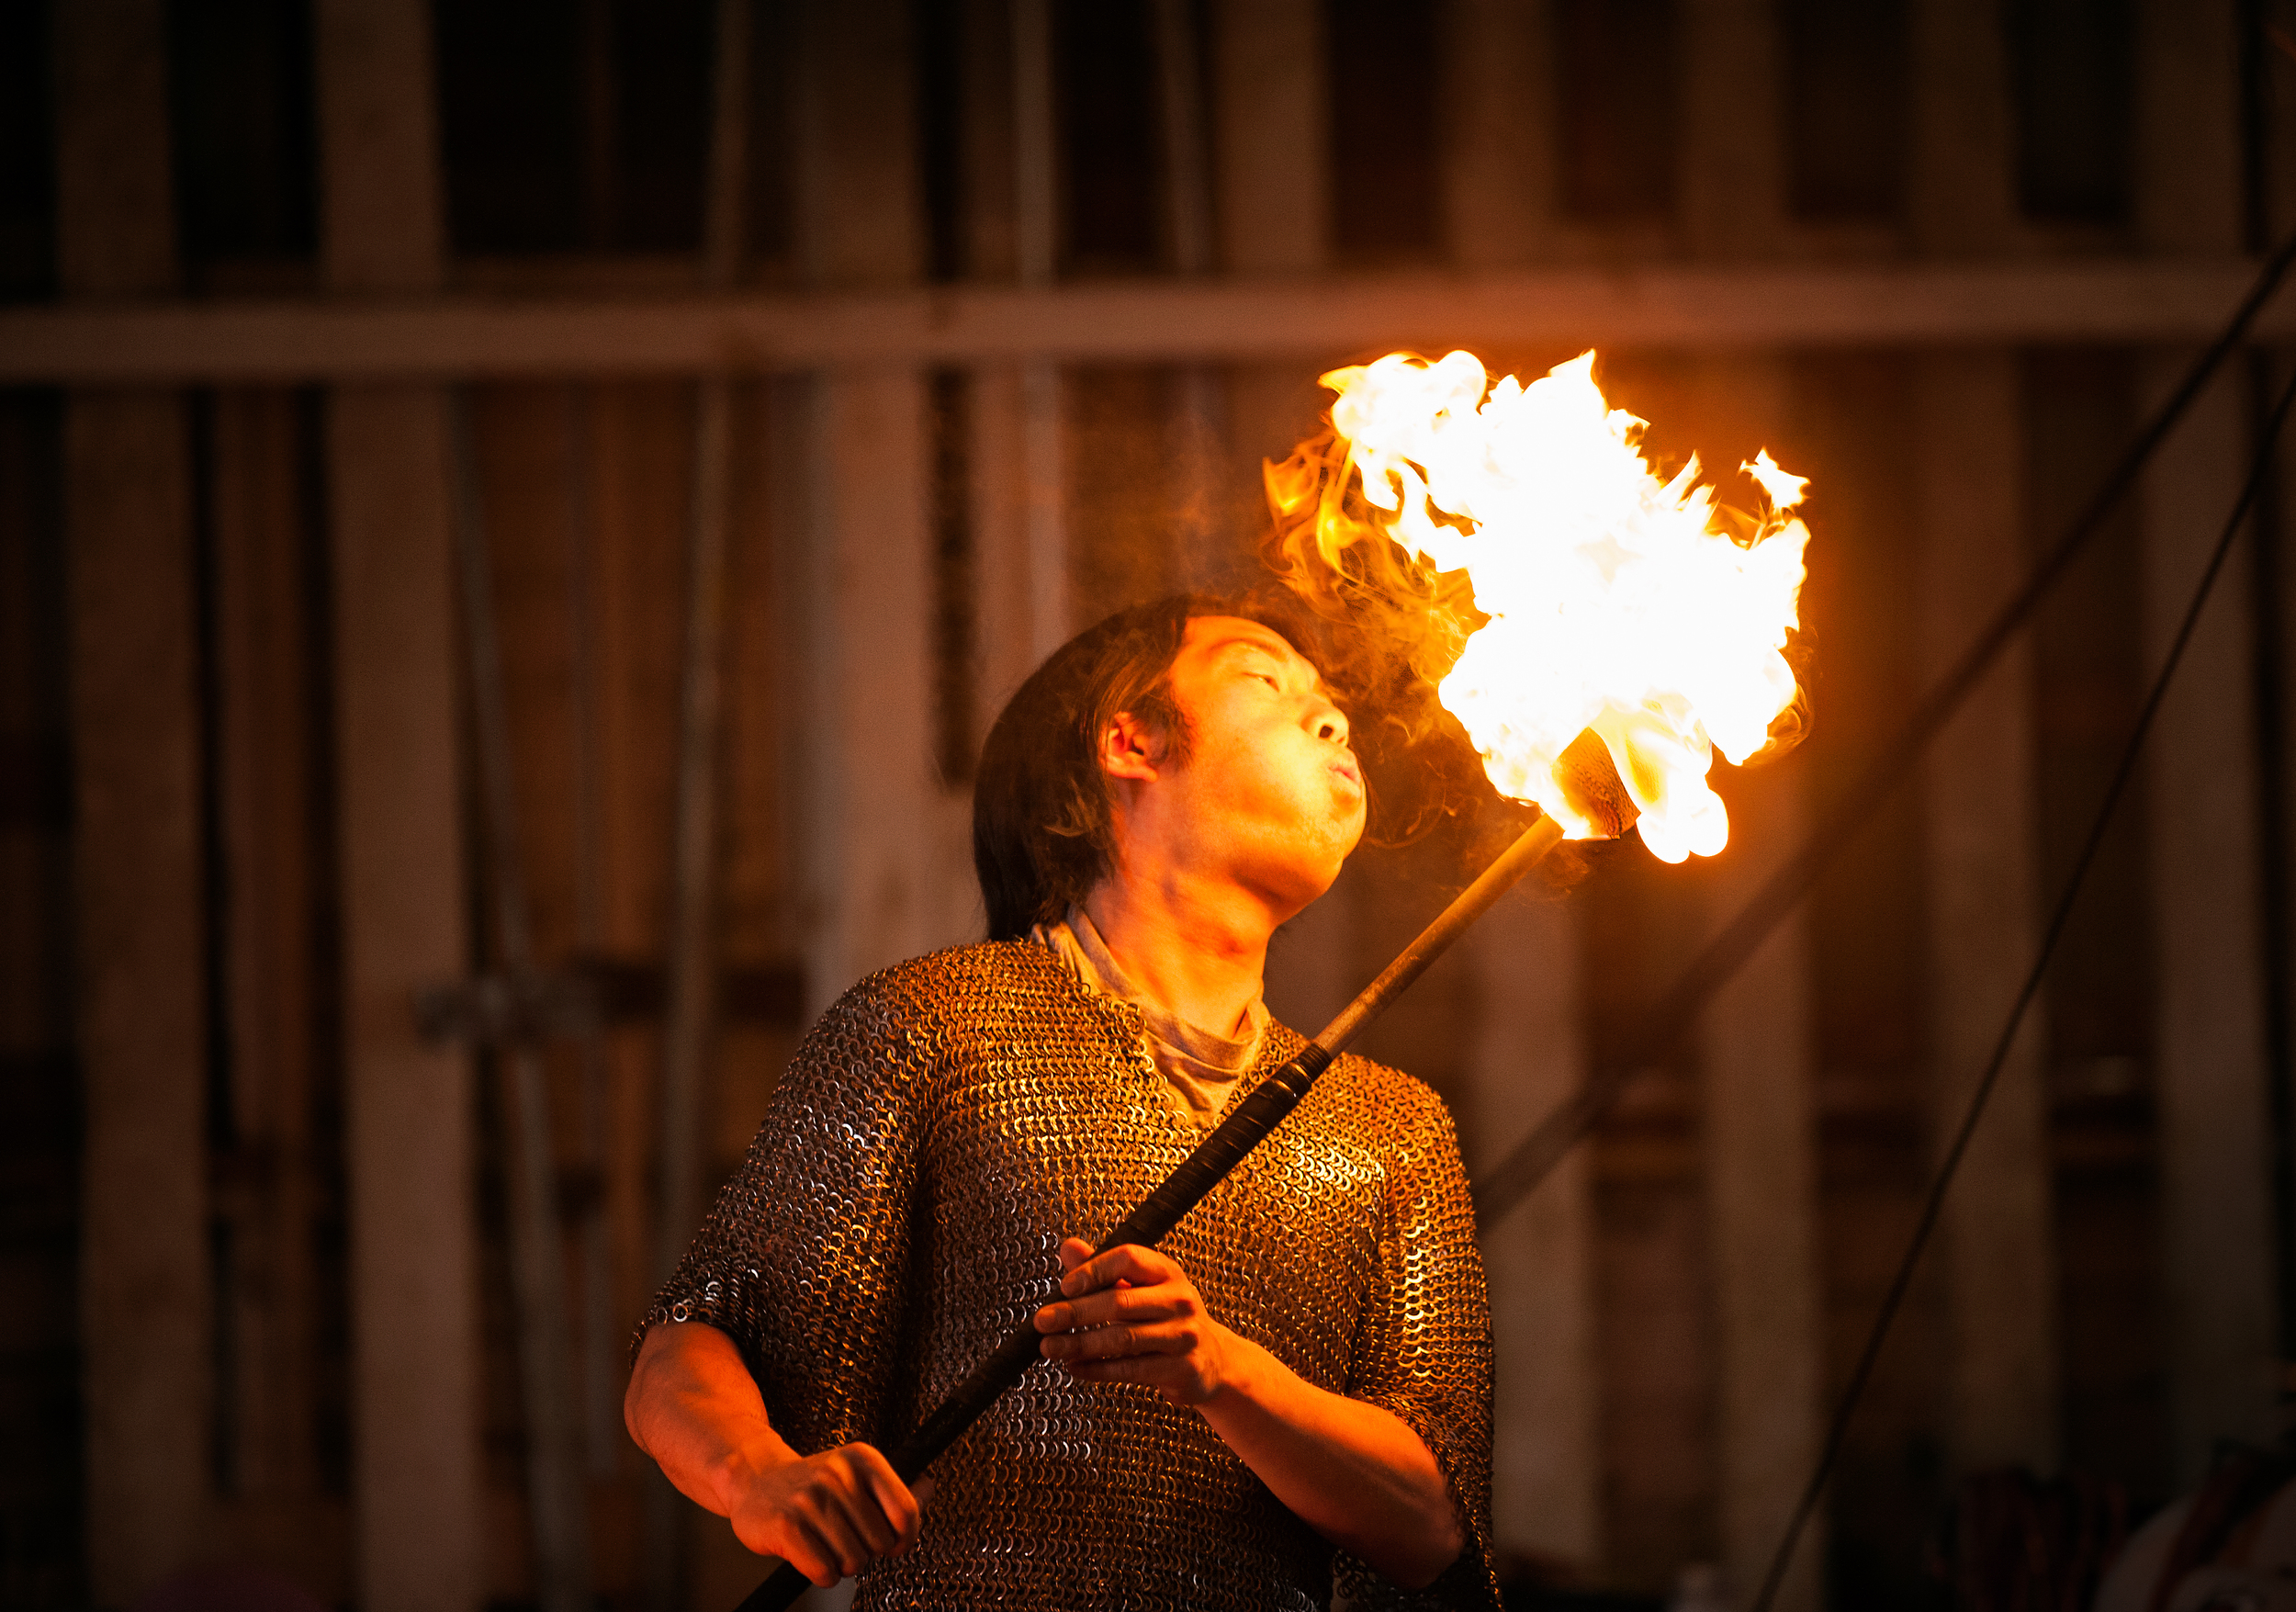 © Kevin Vyse Photography  All rights reserved 2014   Fire Blower getting a flame to burst off the end of the baton.